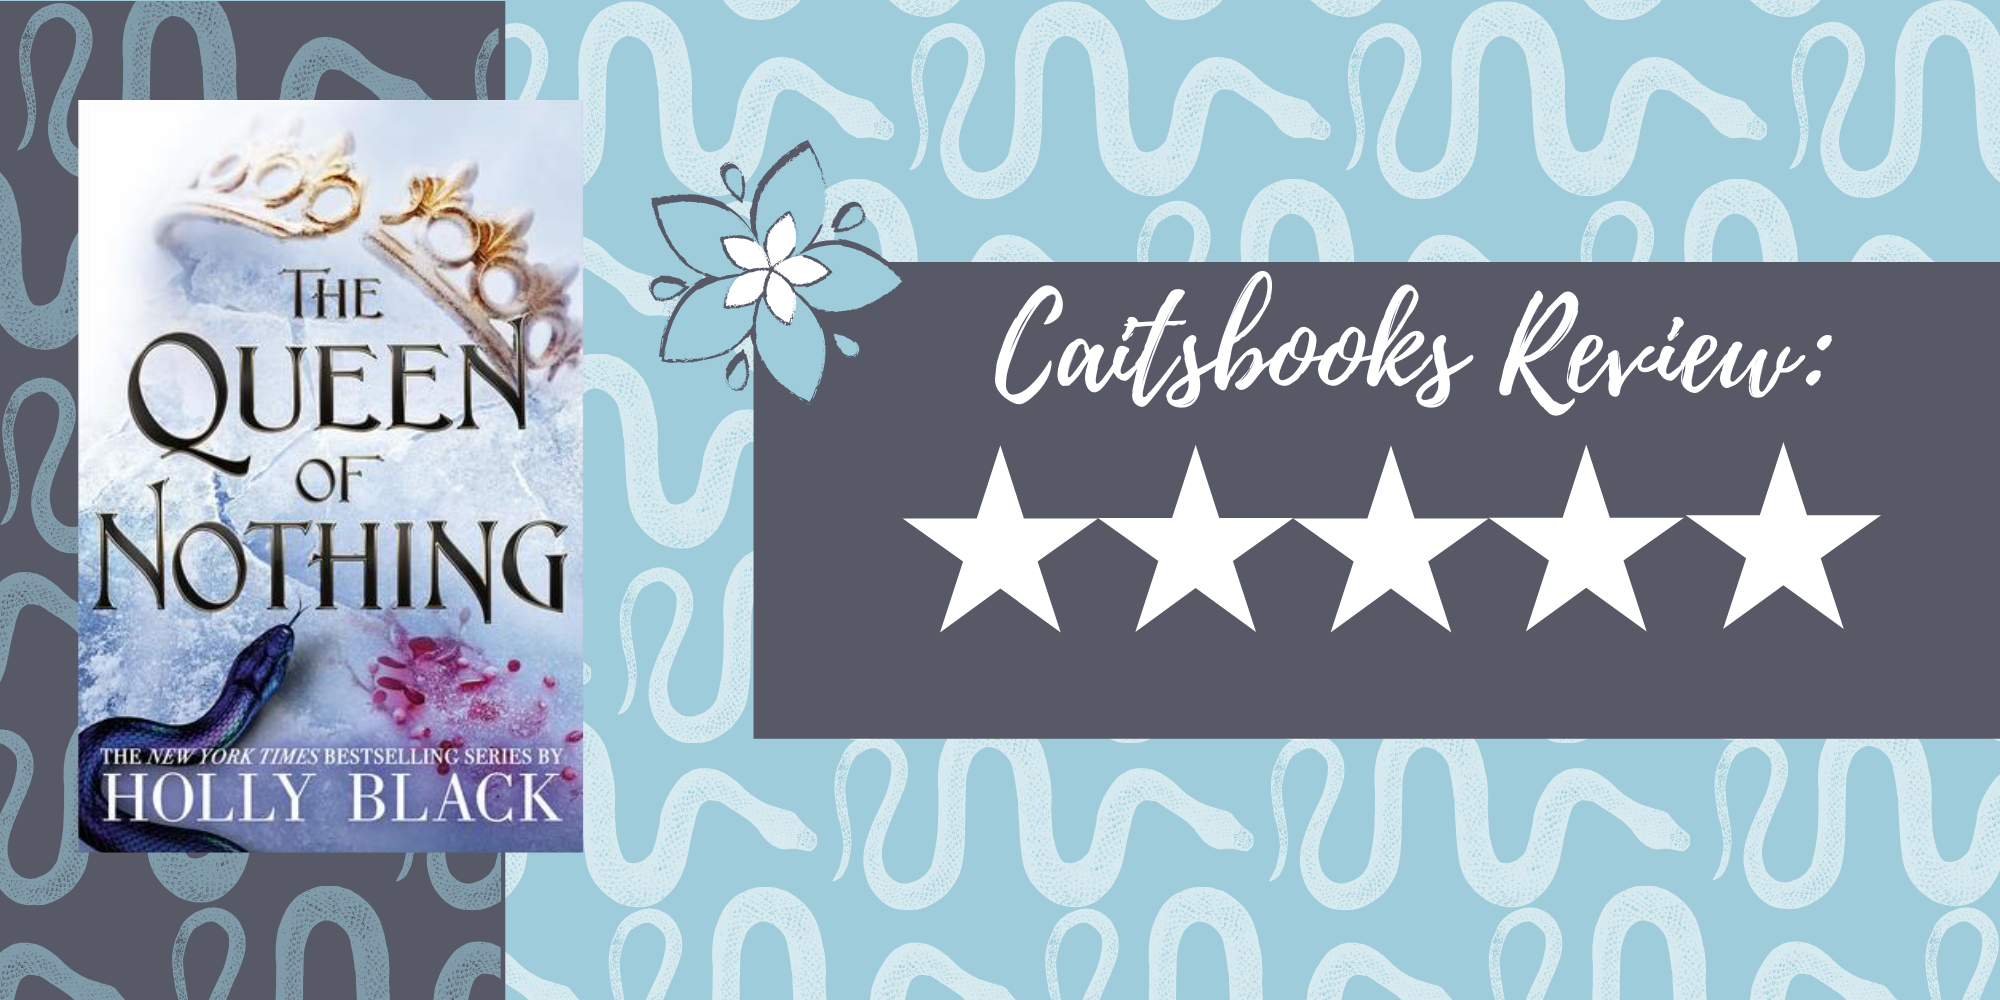 Caitsbooks Reviews The Queen of Nothing by Holly Black (5 Stars). There's a whole lotta snakes in the background of this image.